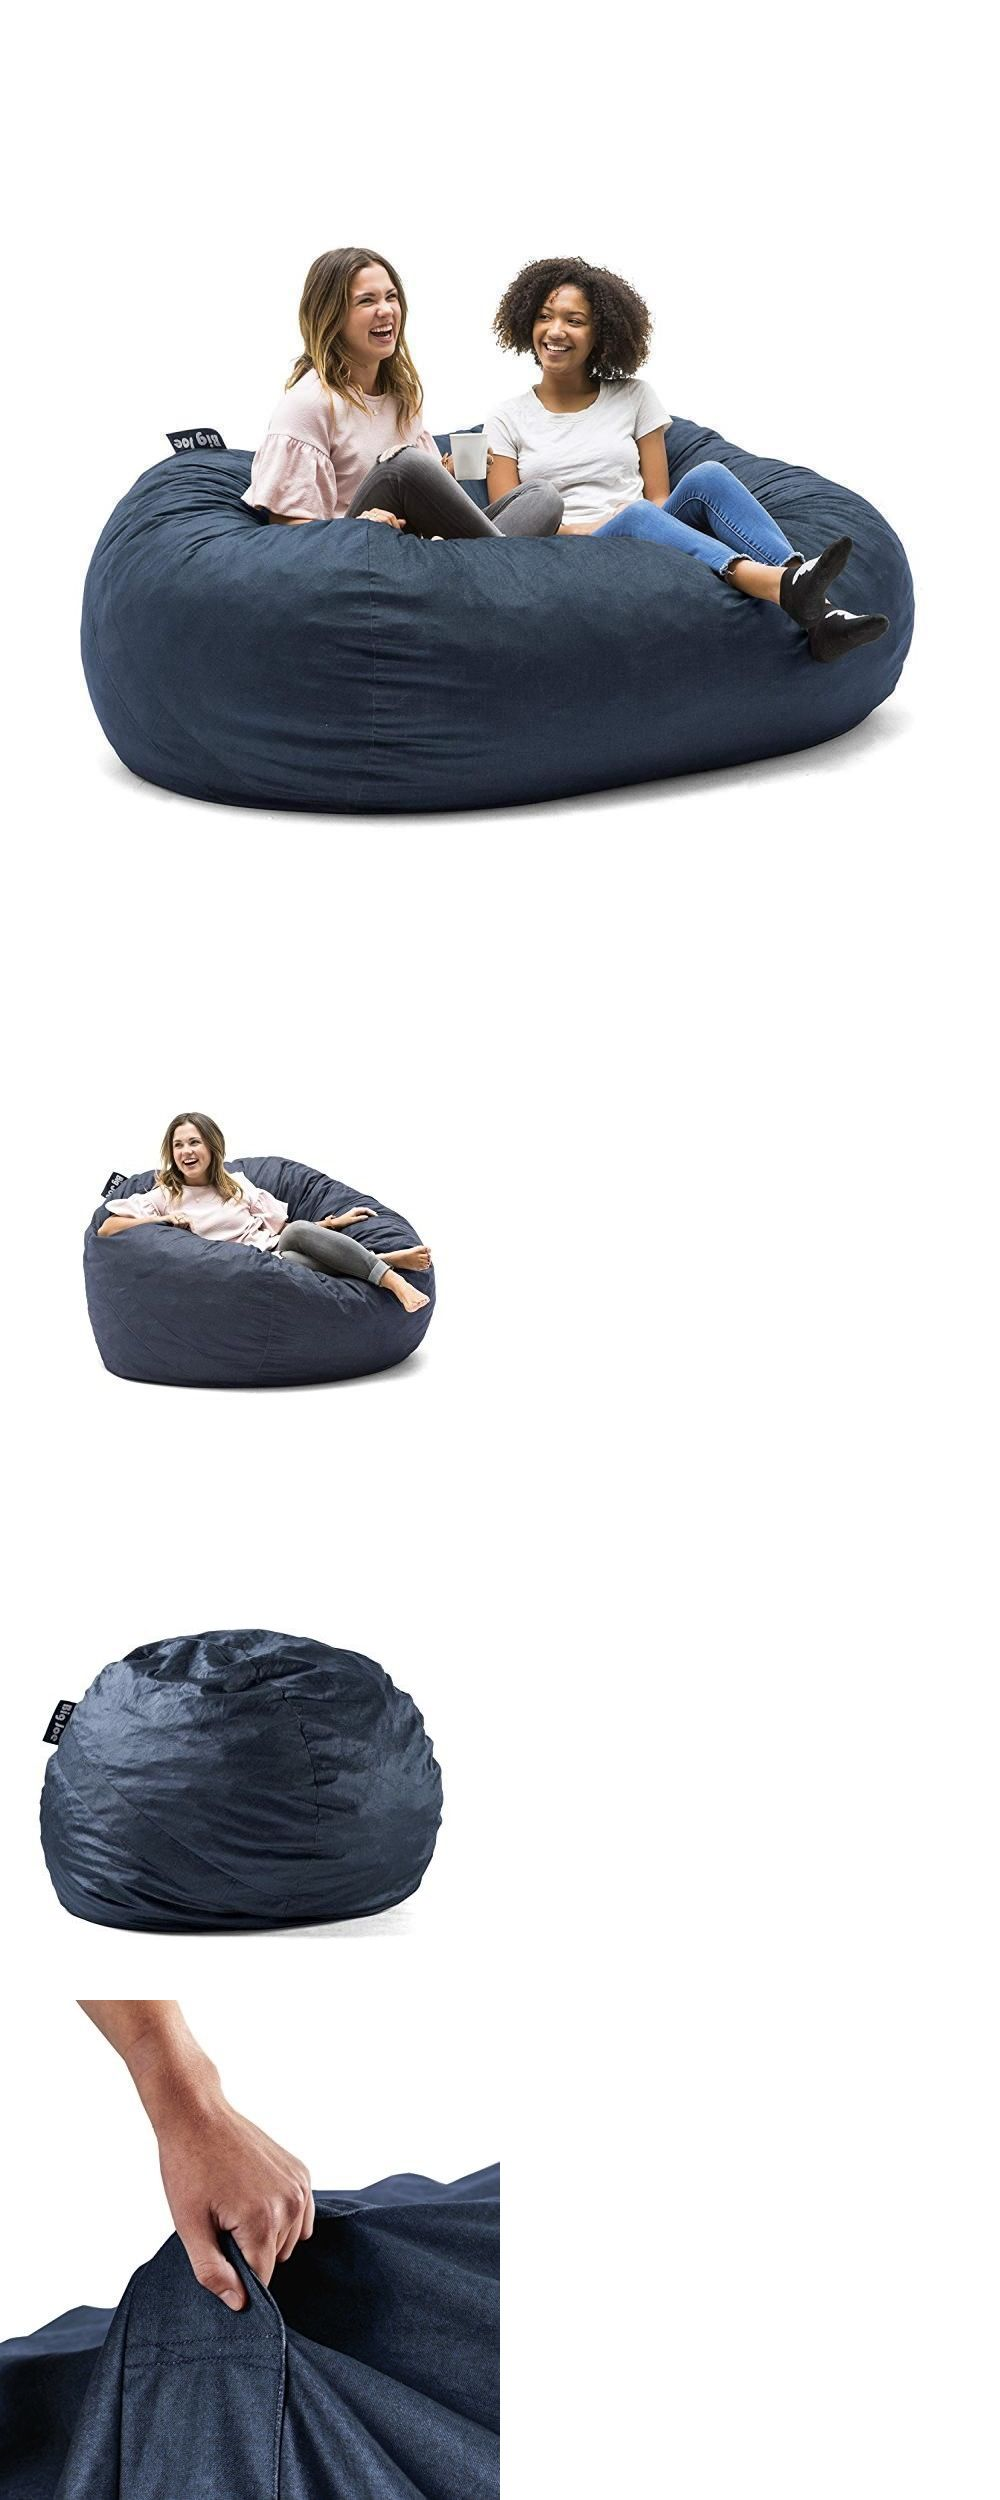 Awesome Bean Bags And Inflatables 48319 Adult Teen Large Fuf Foam Machost Co Dining Chair Design Ideas Machostcouk